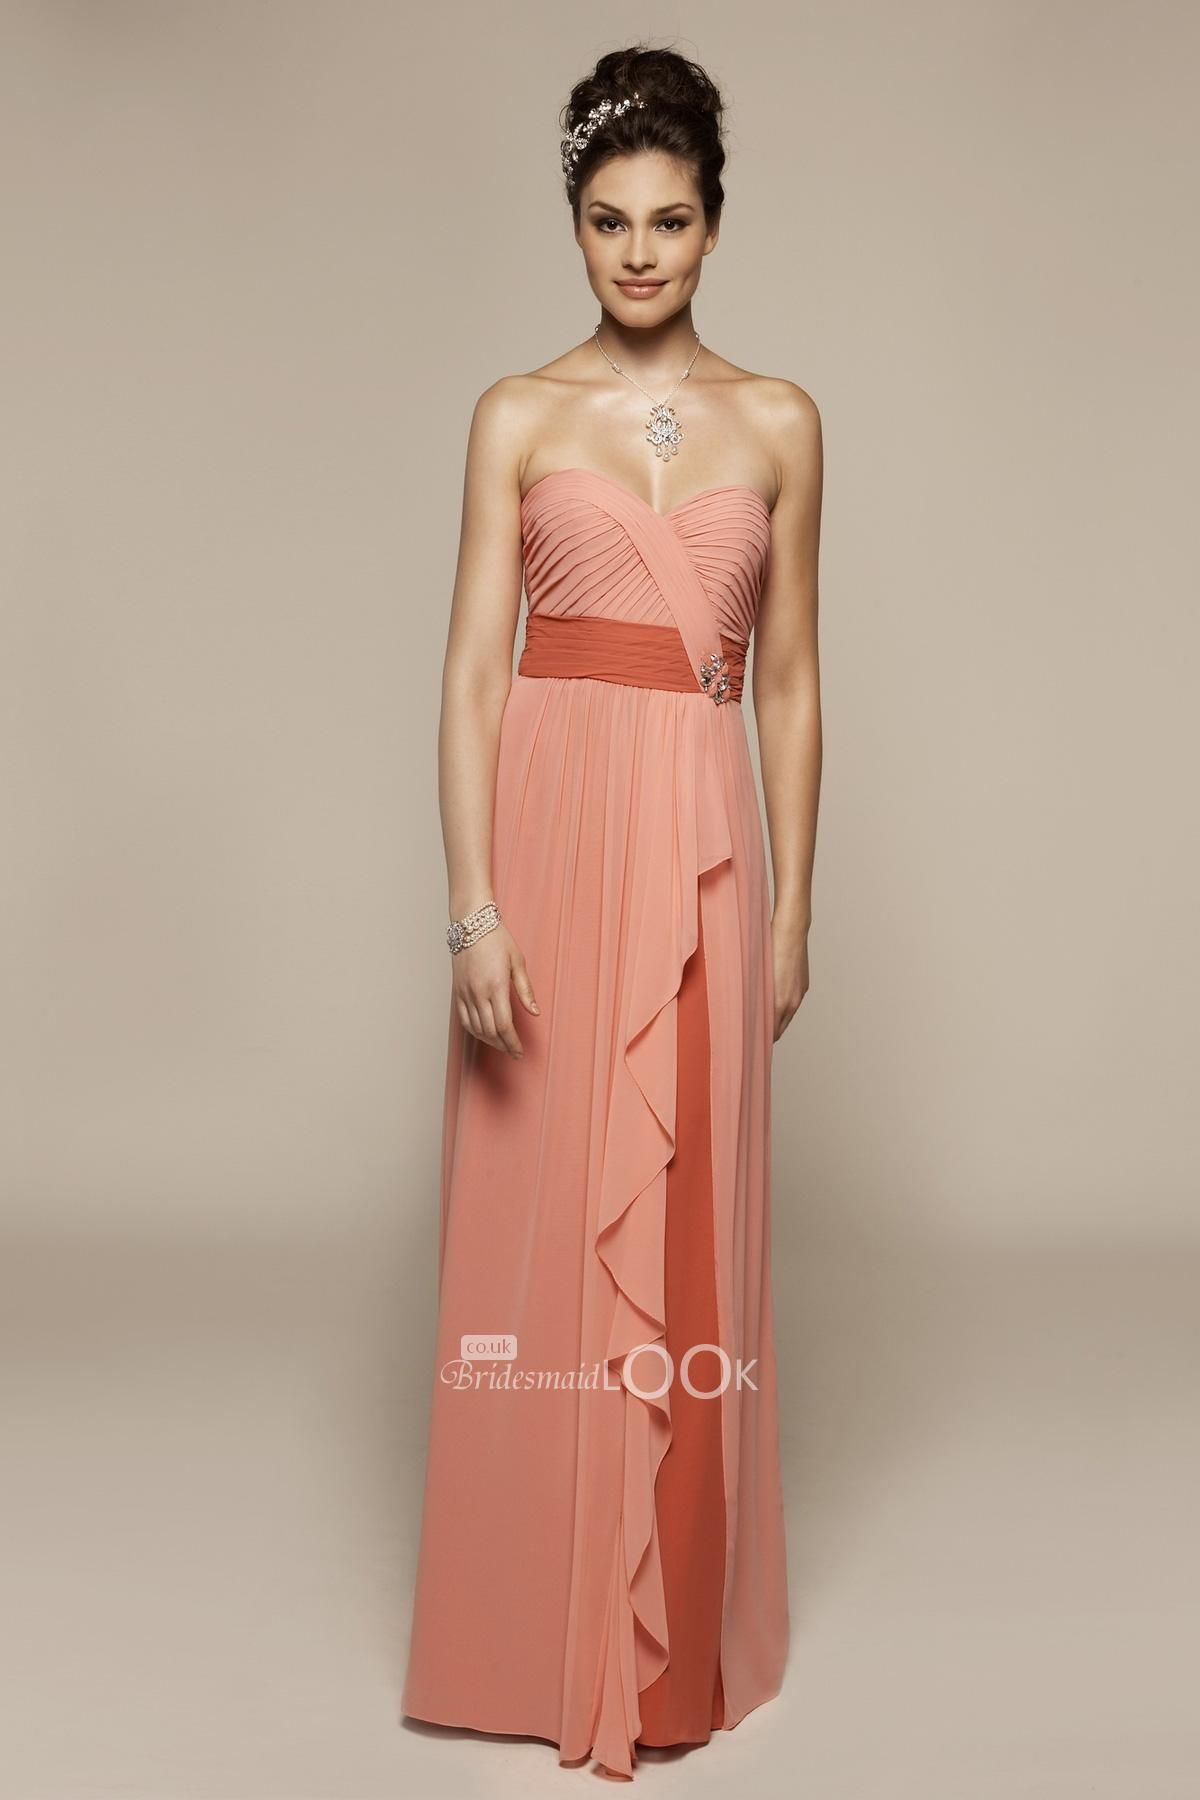 Buy cheap strapless floor length chiffon coral bridesmaid dress - Peach Full Length Bridesmaid Dress With Cascading Skirt Overlay With Shirred Bodice Chiffon Bridesmaid Dresseslace Wedding Dresscheap